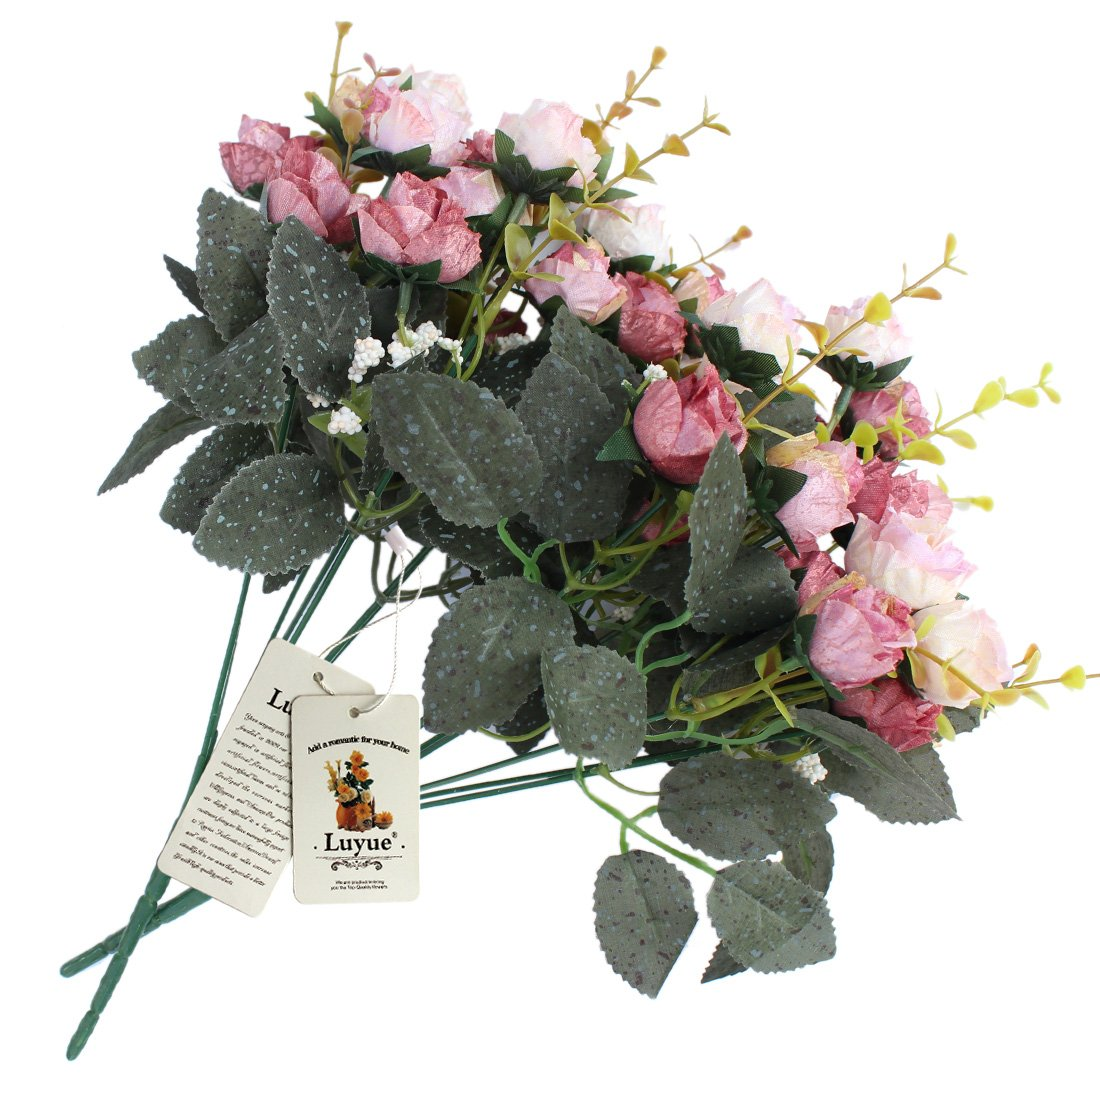 Amazon luyue 7 branch 21 heads artificial silk fake flowers amazon luyue 7 branch 21 heads artificial silk fake flowers leaf rose wedding floral decor bouquetpack of 2 pink coffee home kitchen dhlflorist Gallery